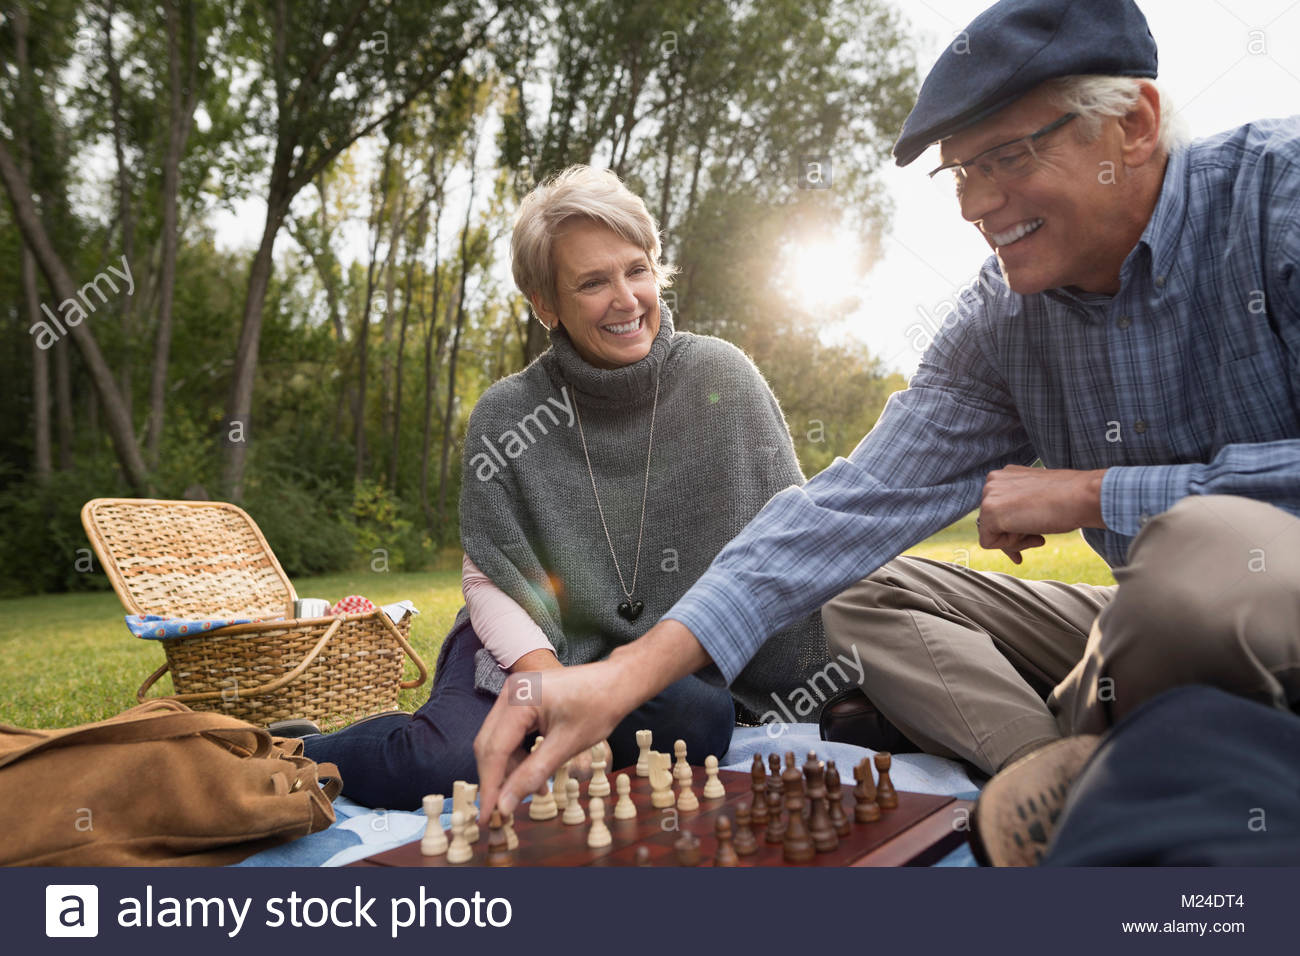 Senior couple playing chess in park Photo Stock